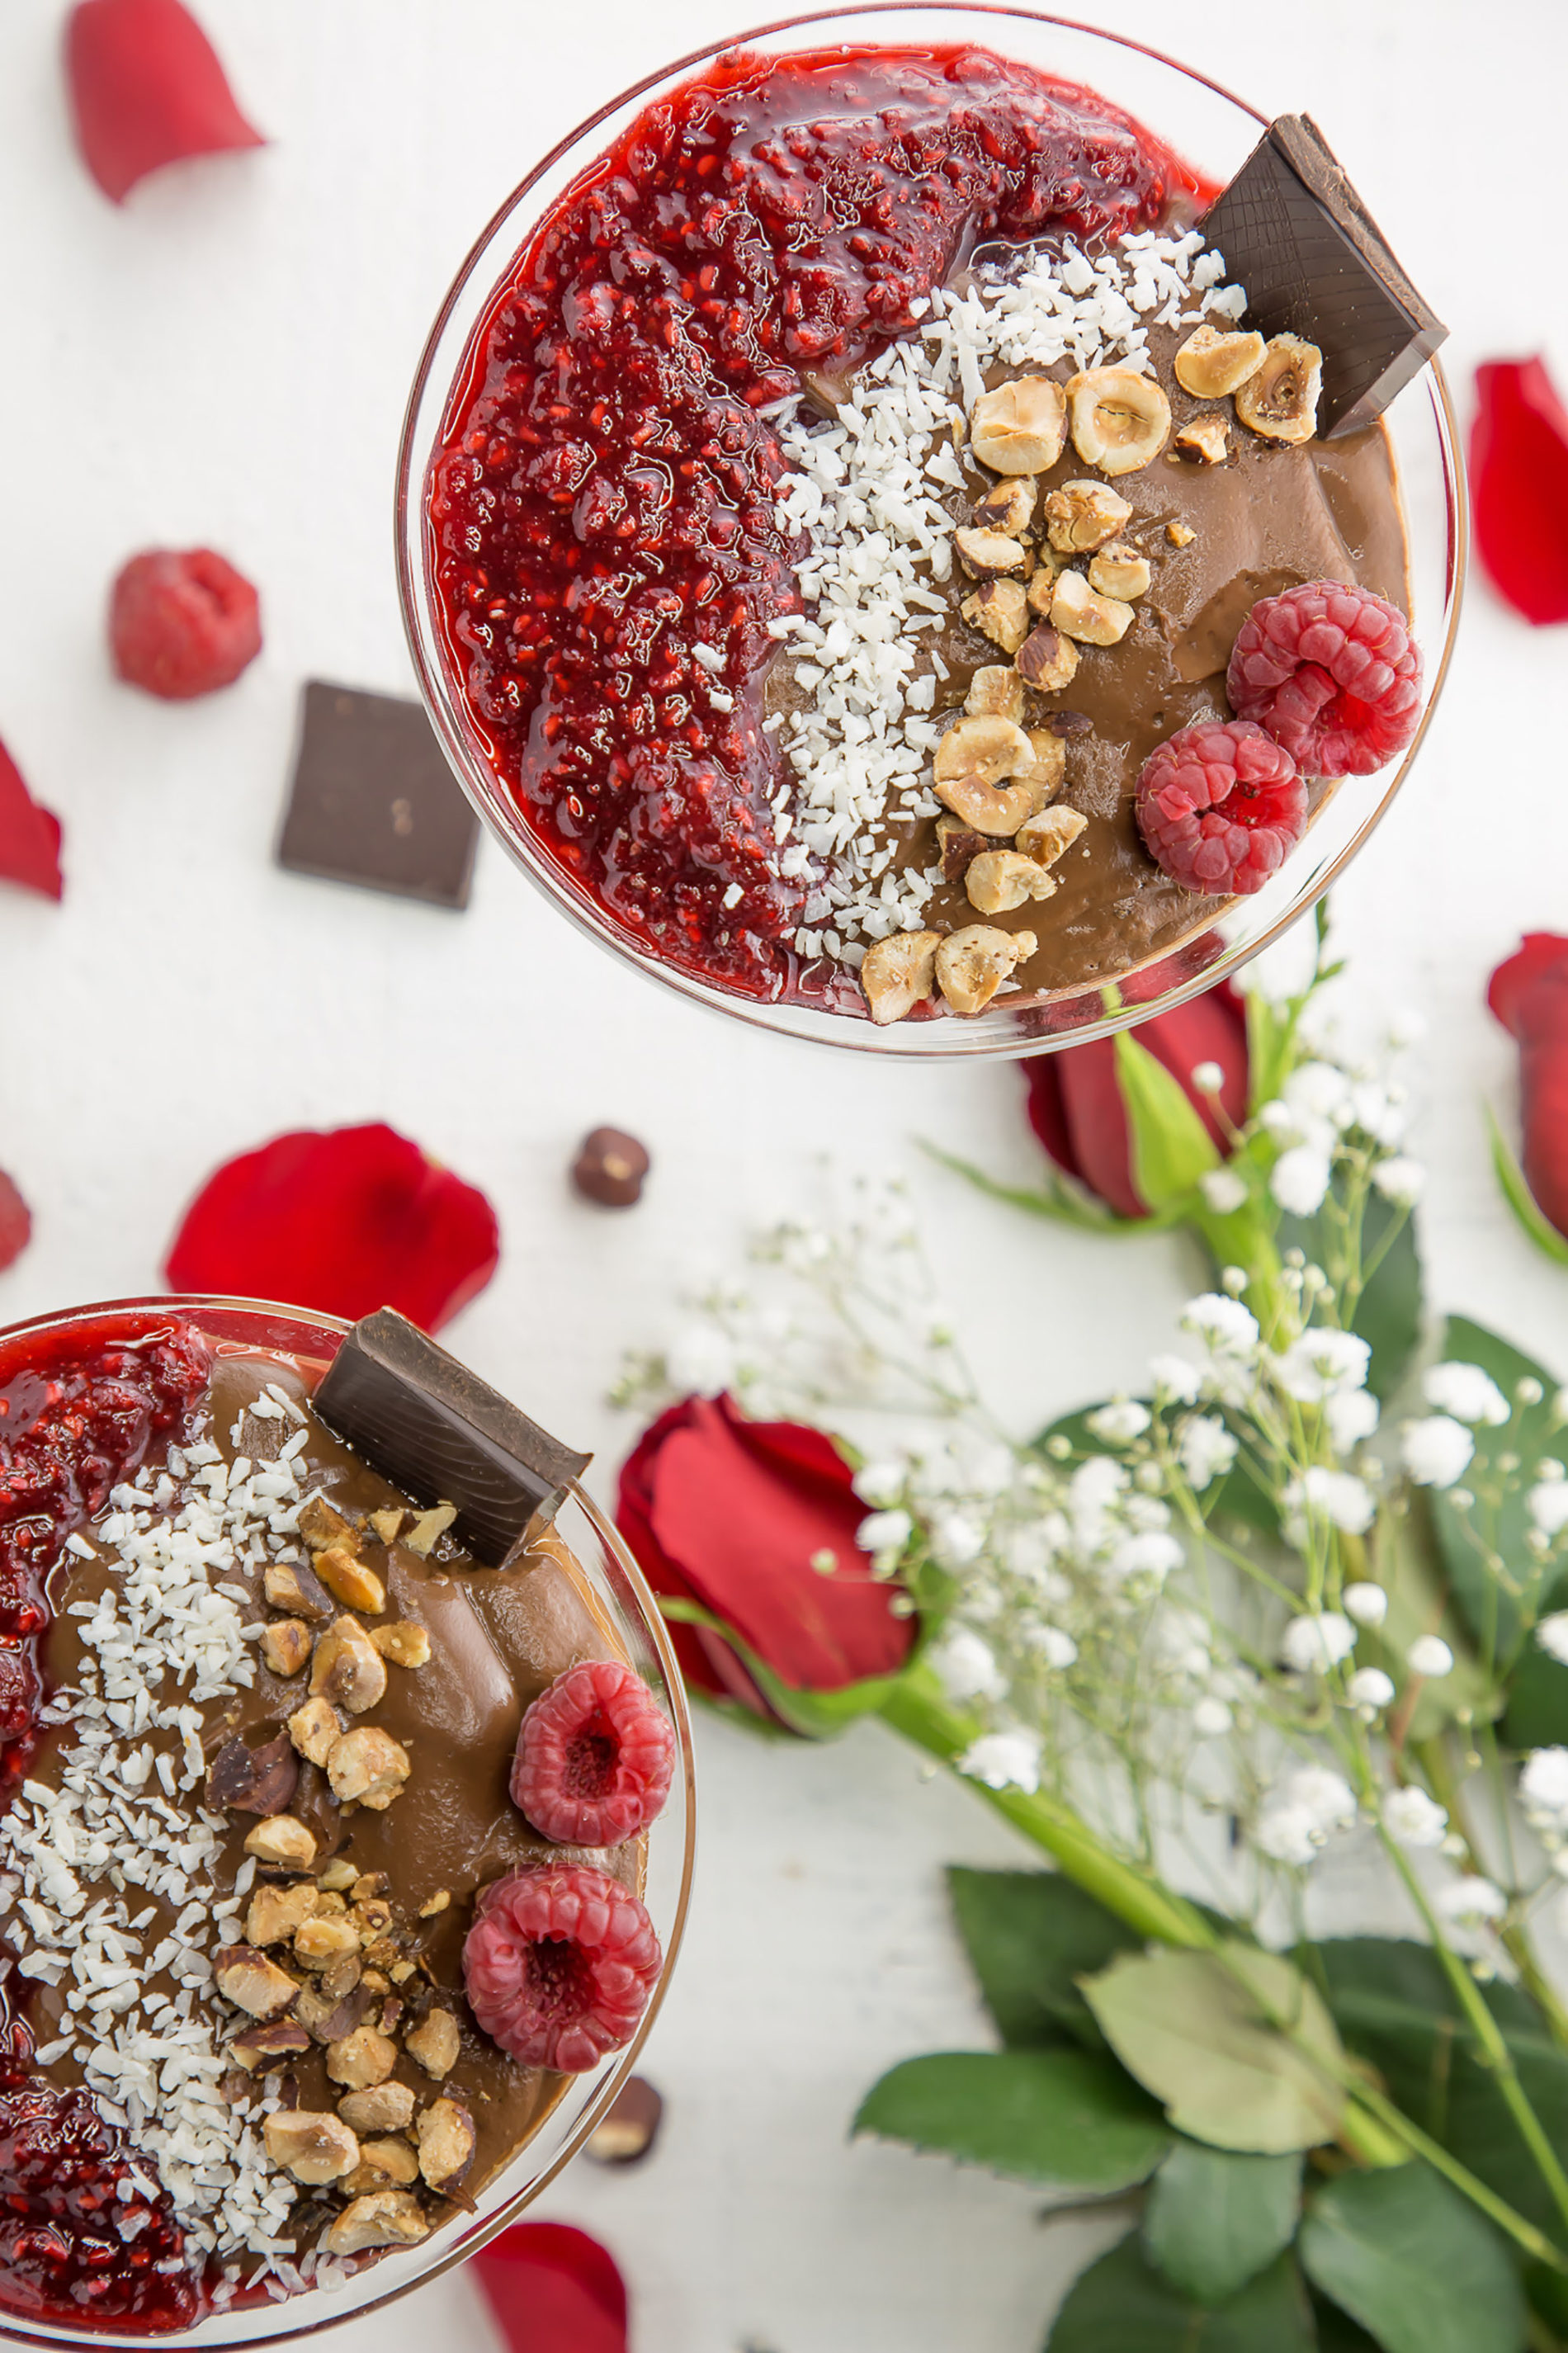 vegan chocolate pudding in a martini glass with rose petals and chocolate